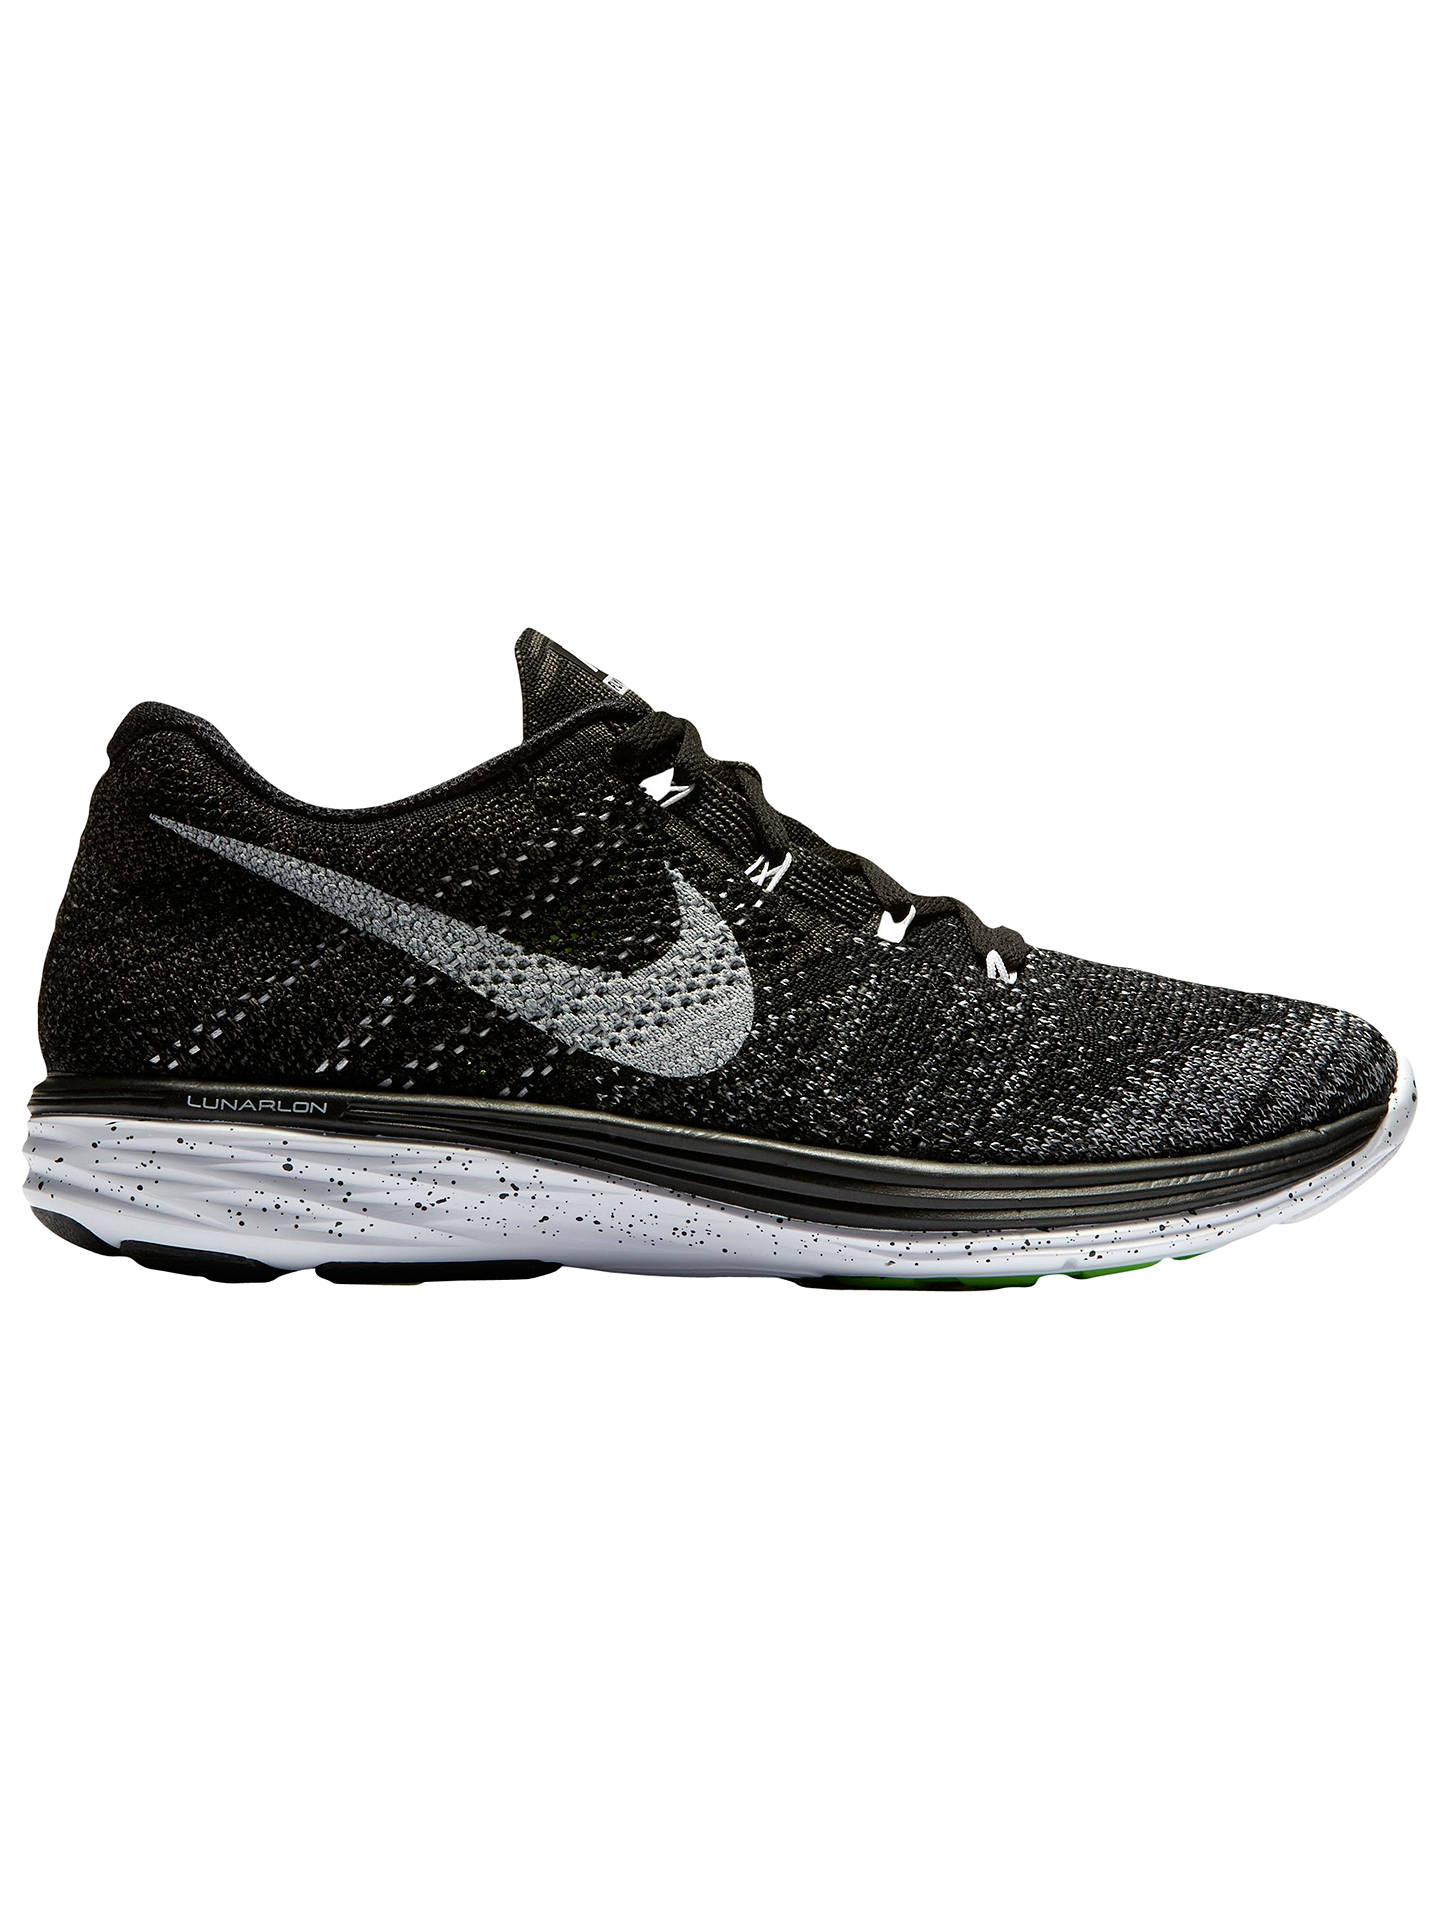 4a47aef633ce Nike Flyknit Lunar 3 Men s Running Shoes at John Lewis   Partners